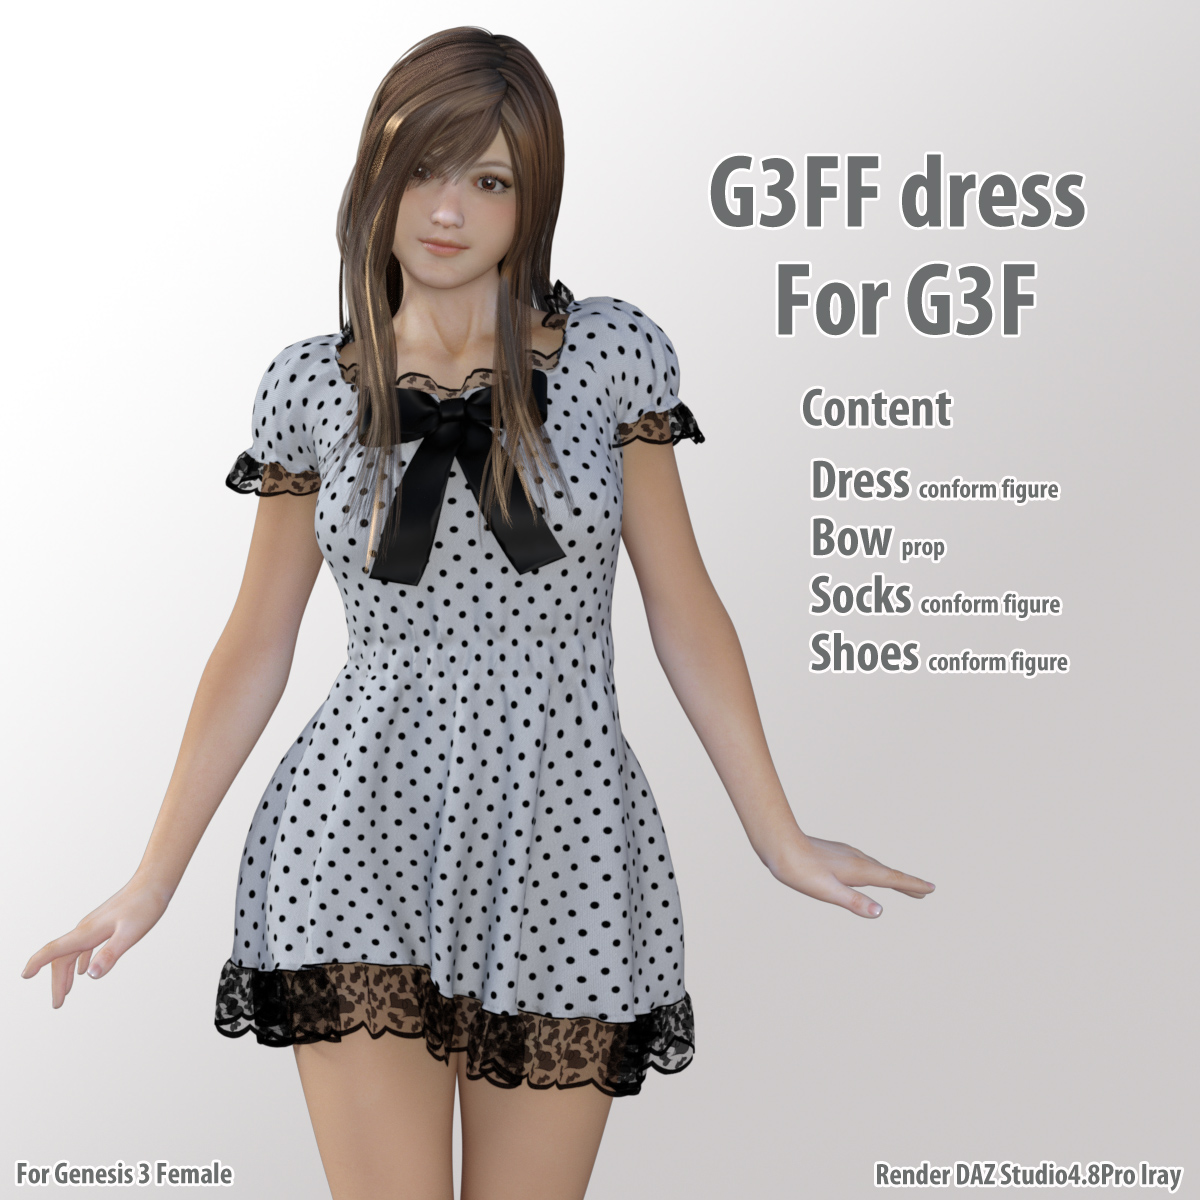 G3FFdress for G3F